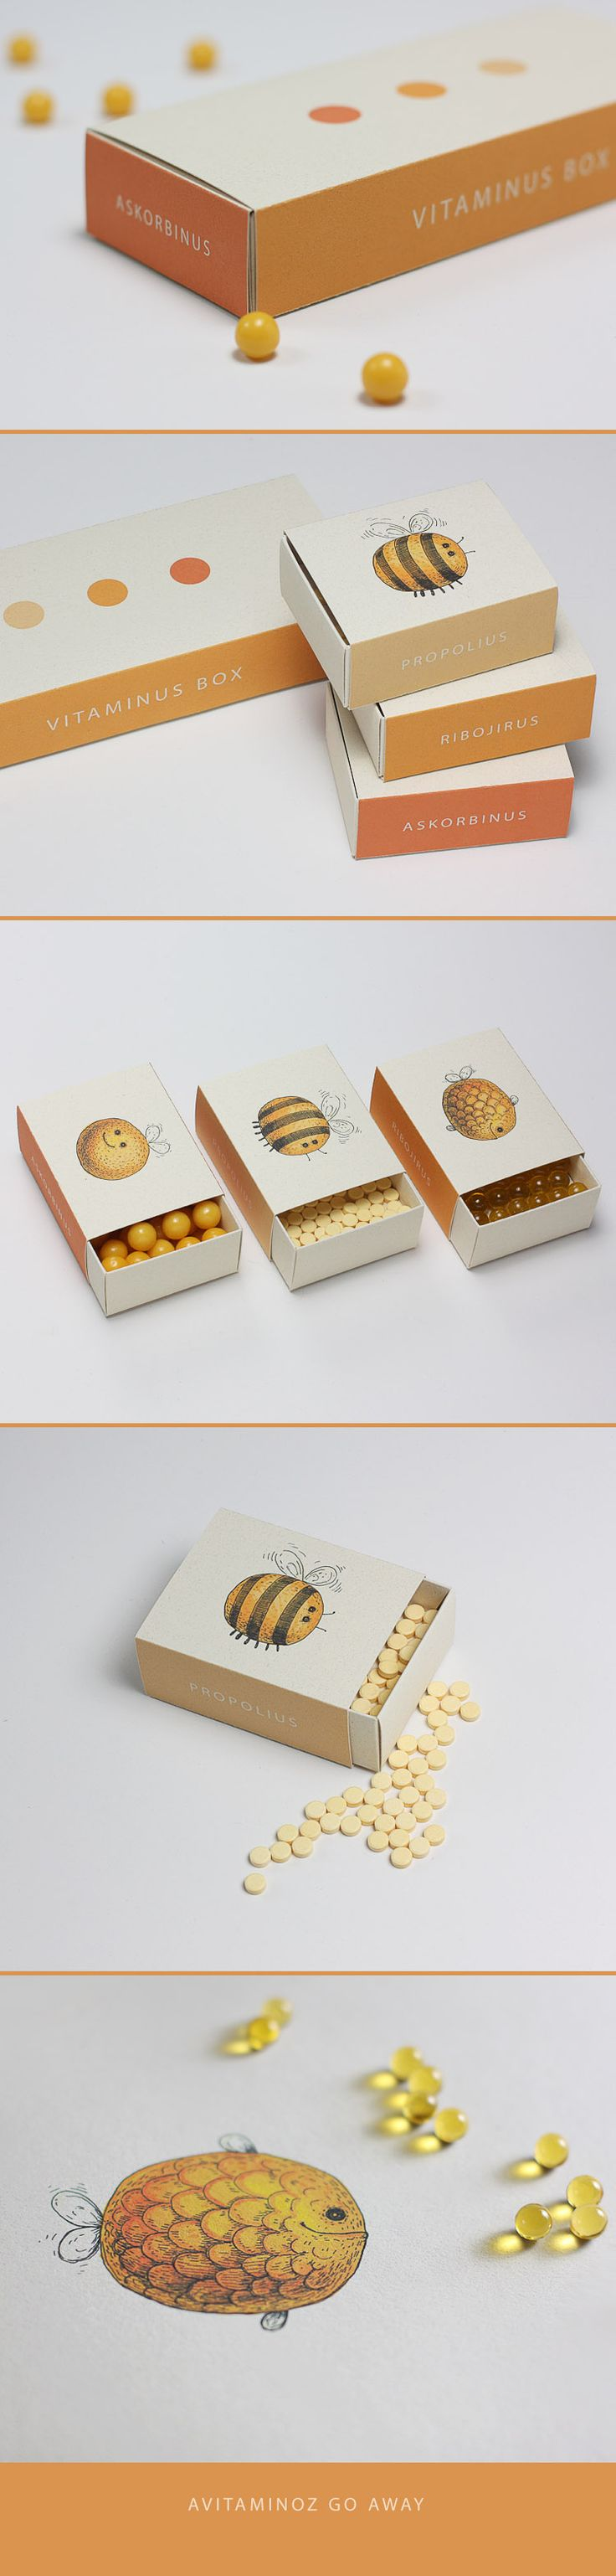 Vitaminus Box, Упаковка © Serg Tropov so cute vitamin #packaging PD